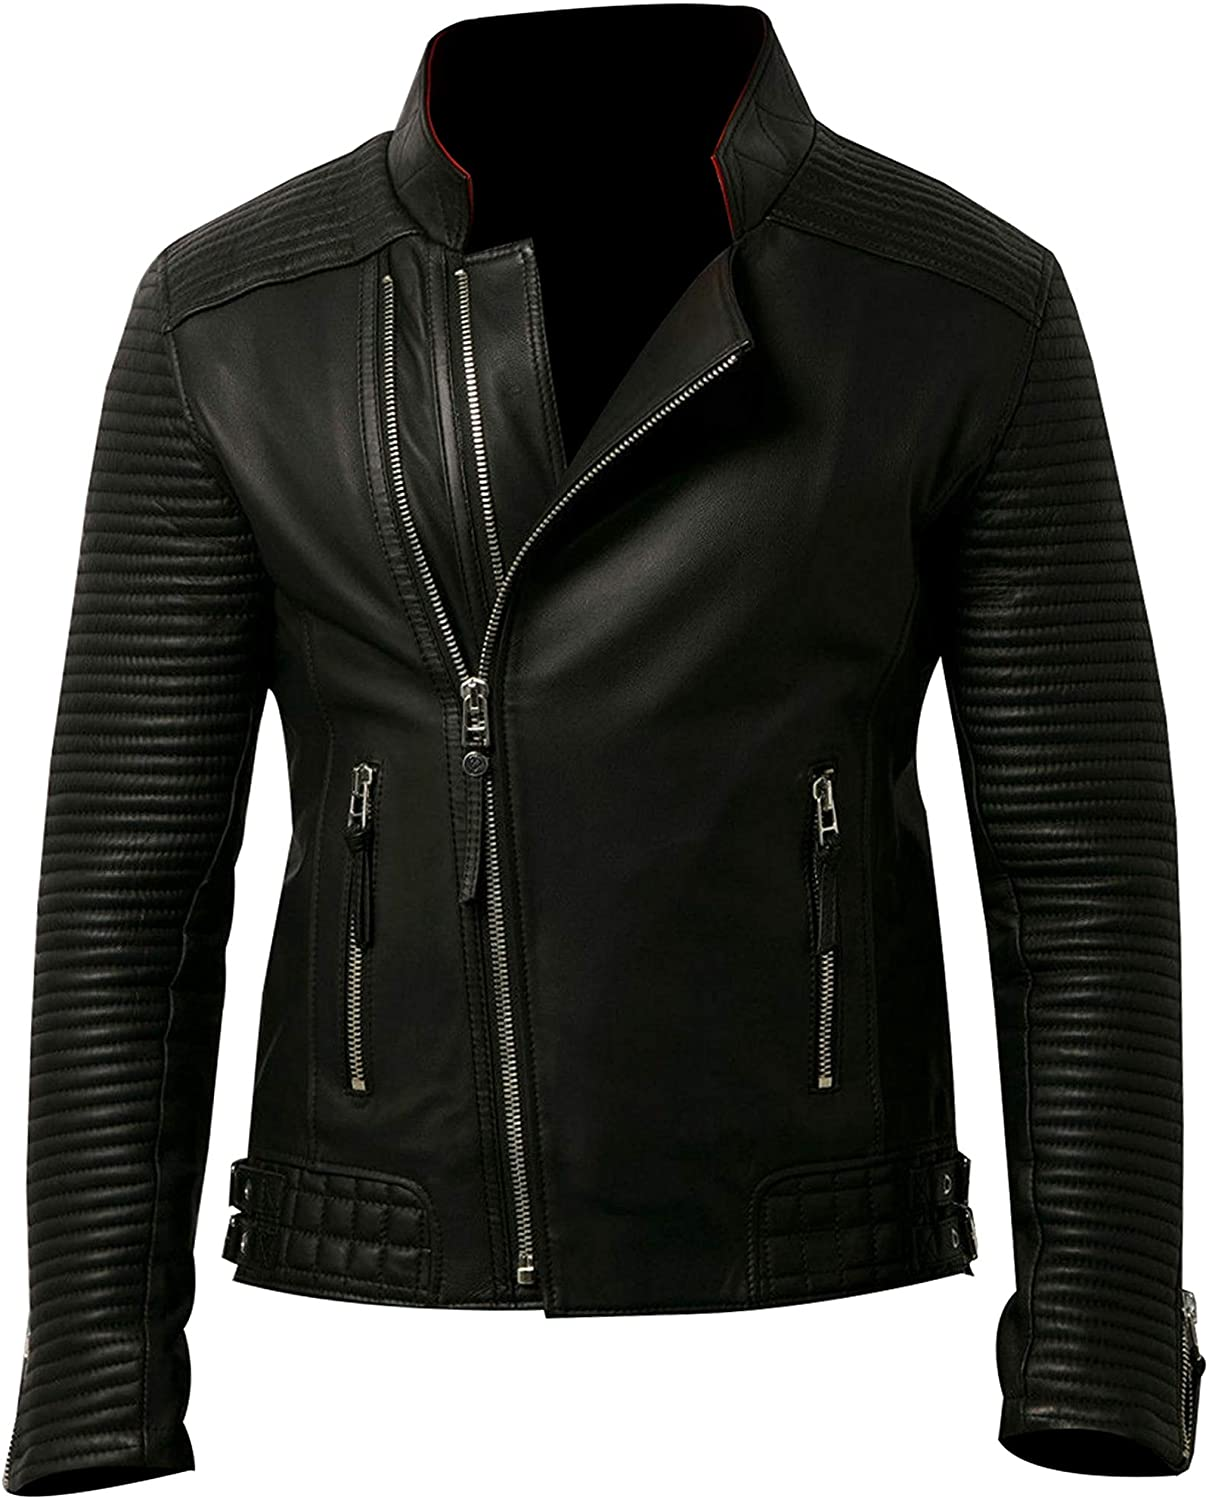 UGFashions Mens Brando Vintage Double Zipper Motorcycle Quilted Black Leather Jacket